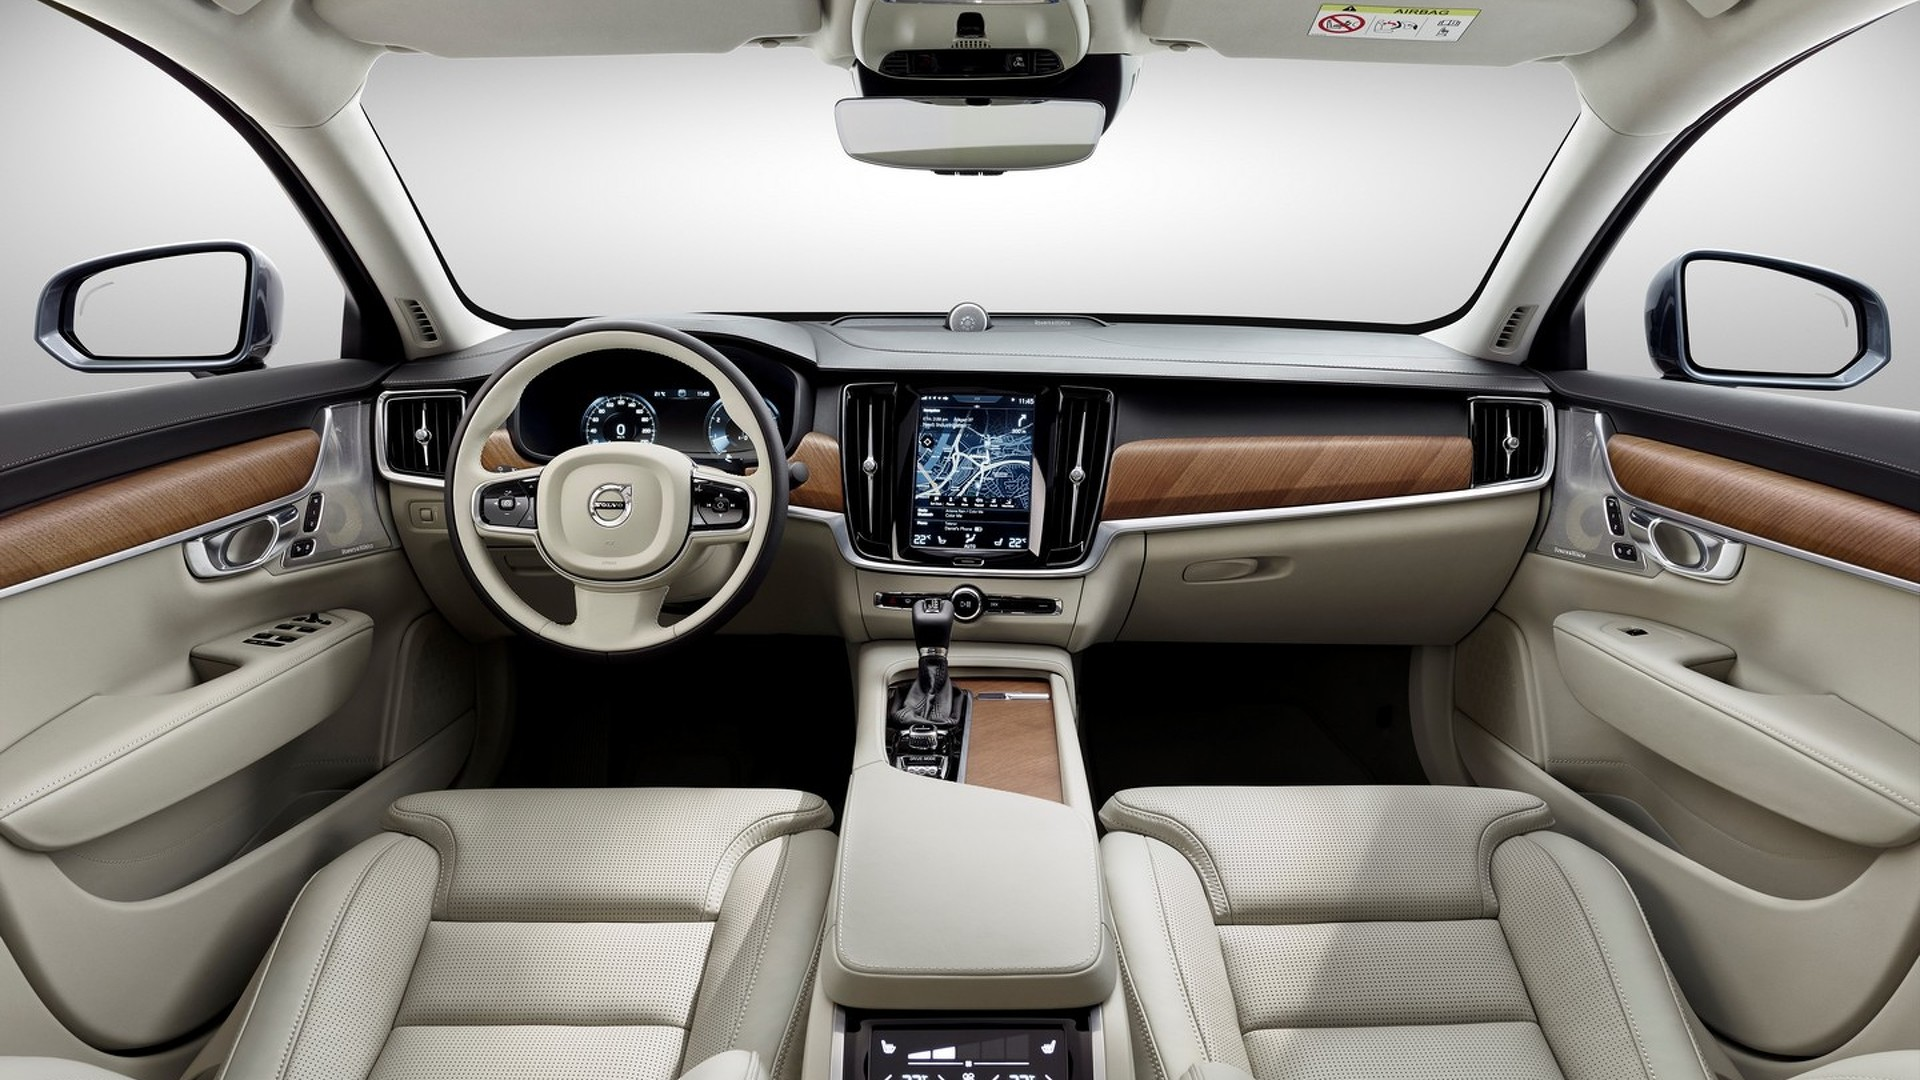 Volvo S90 returns to show elegant cabin in new video